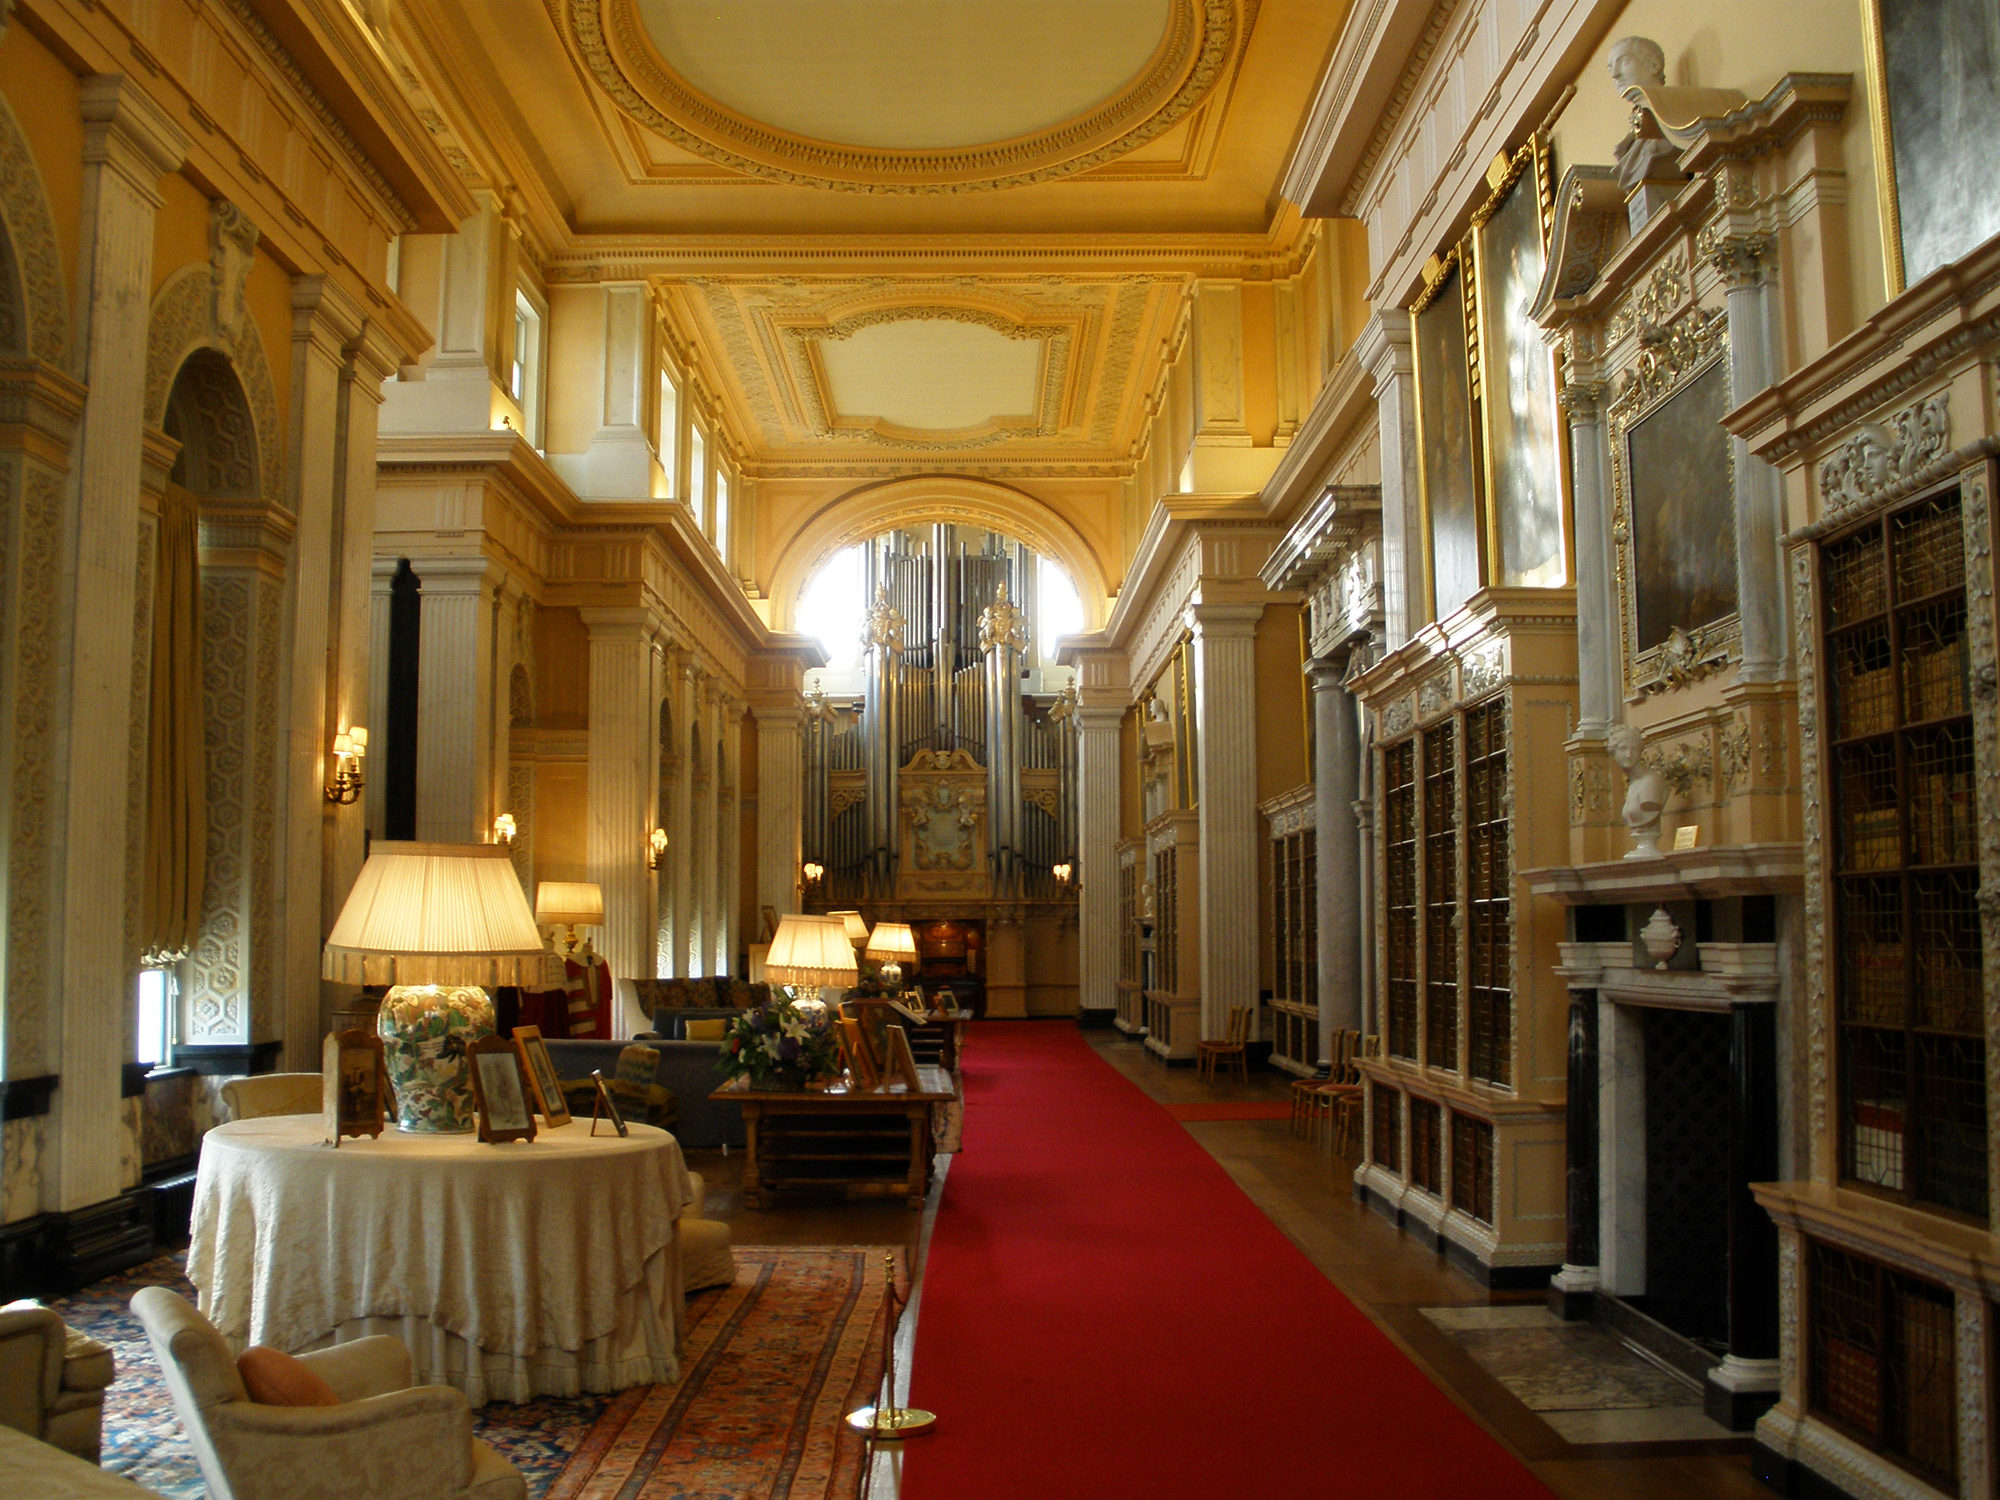 https://i2.wp.com/upload.wikimedia.org/wikipedia/commons/d/d1/Blenheim_Palace_6-2008_3.jpg